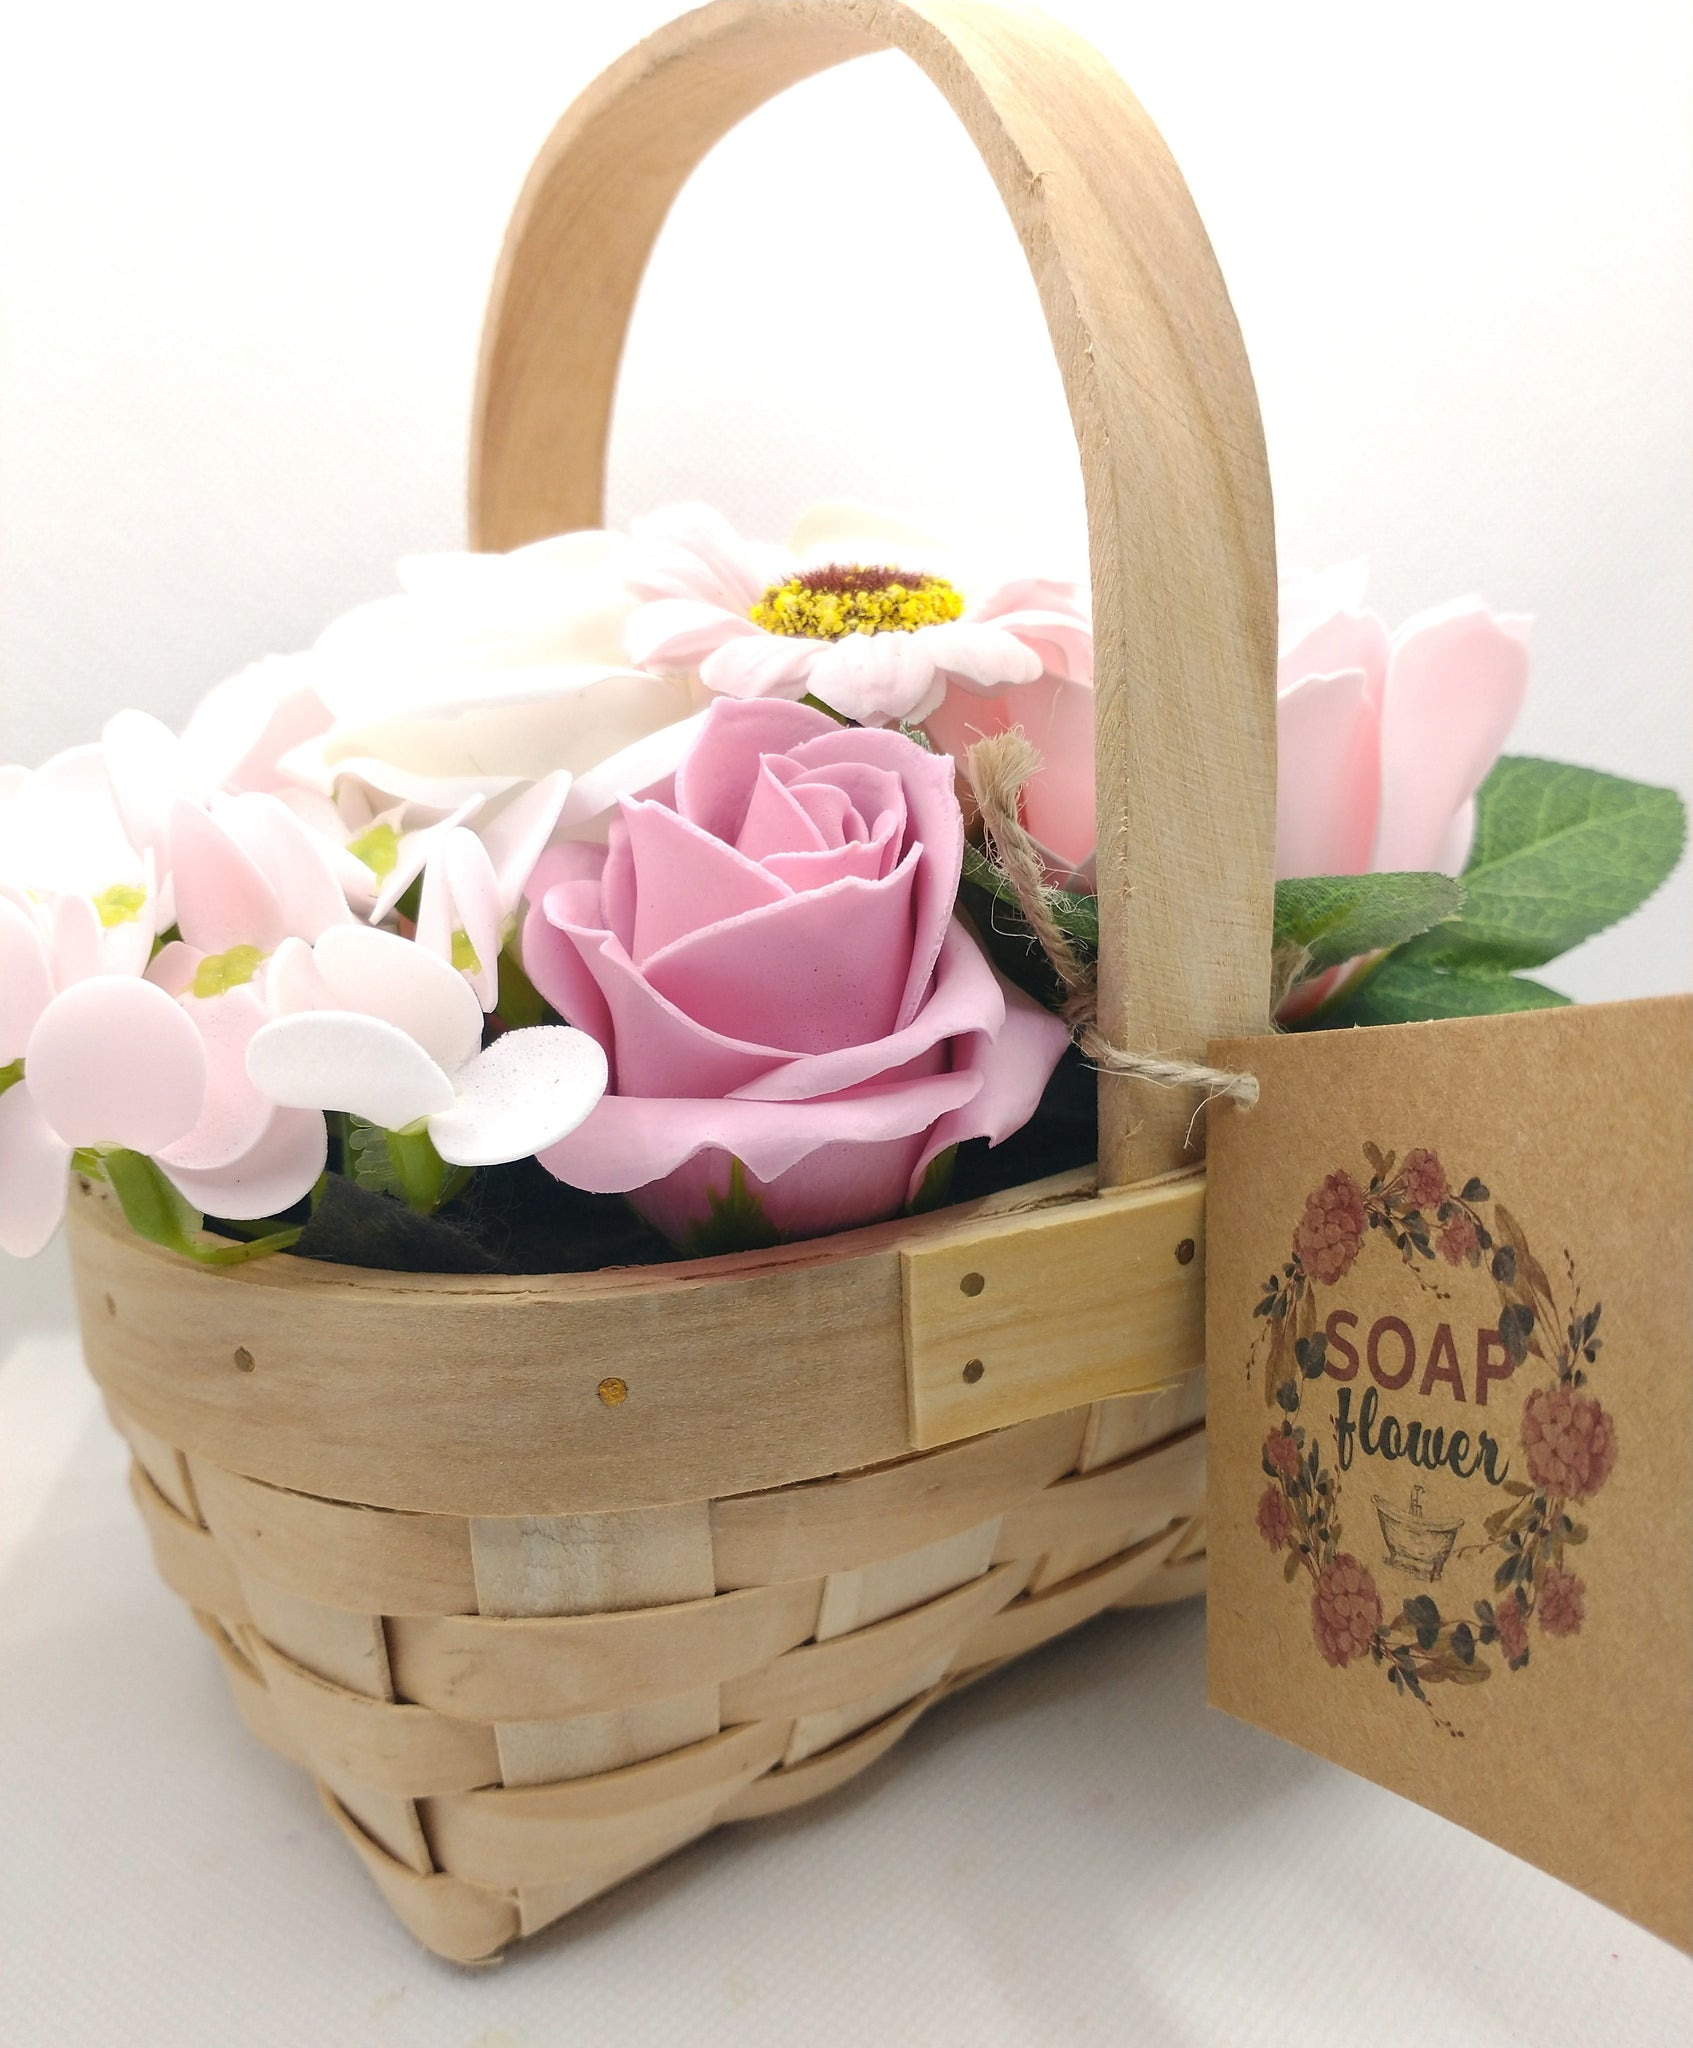 soap flowers shown in wicker basket with kraft tag showing wording Soap Flowers and contents including pink roses white roses and pink sunflowers with green foliage